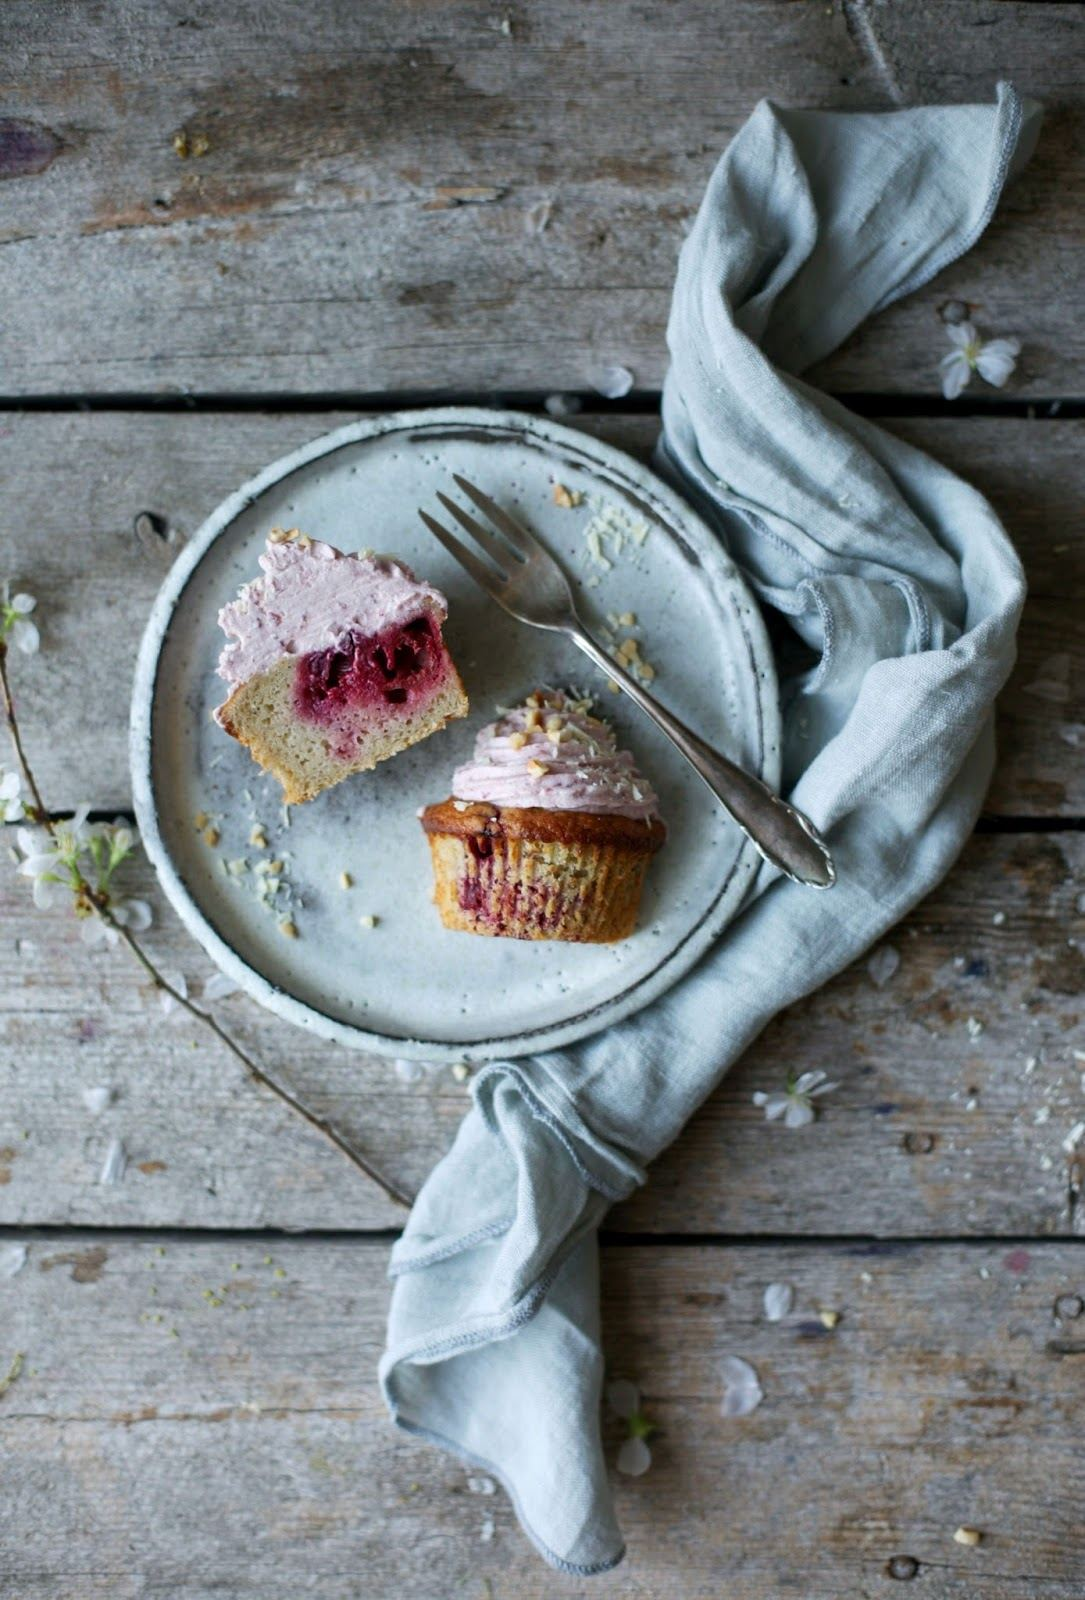 Gluten-free Banana-Cherry-Muffins with Cherry-Frosting